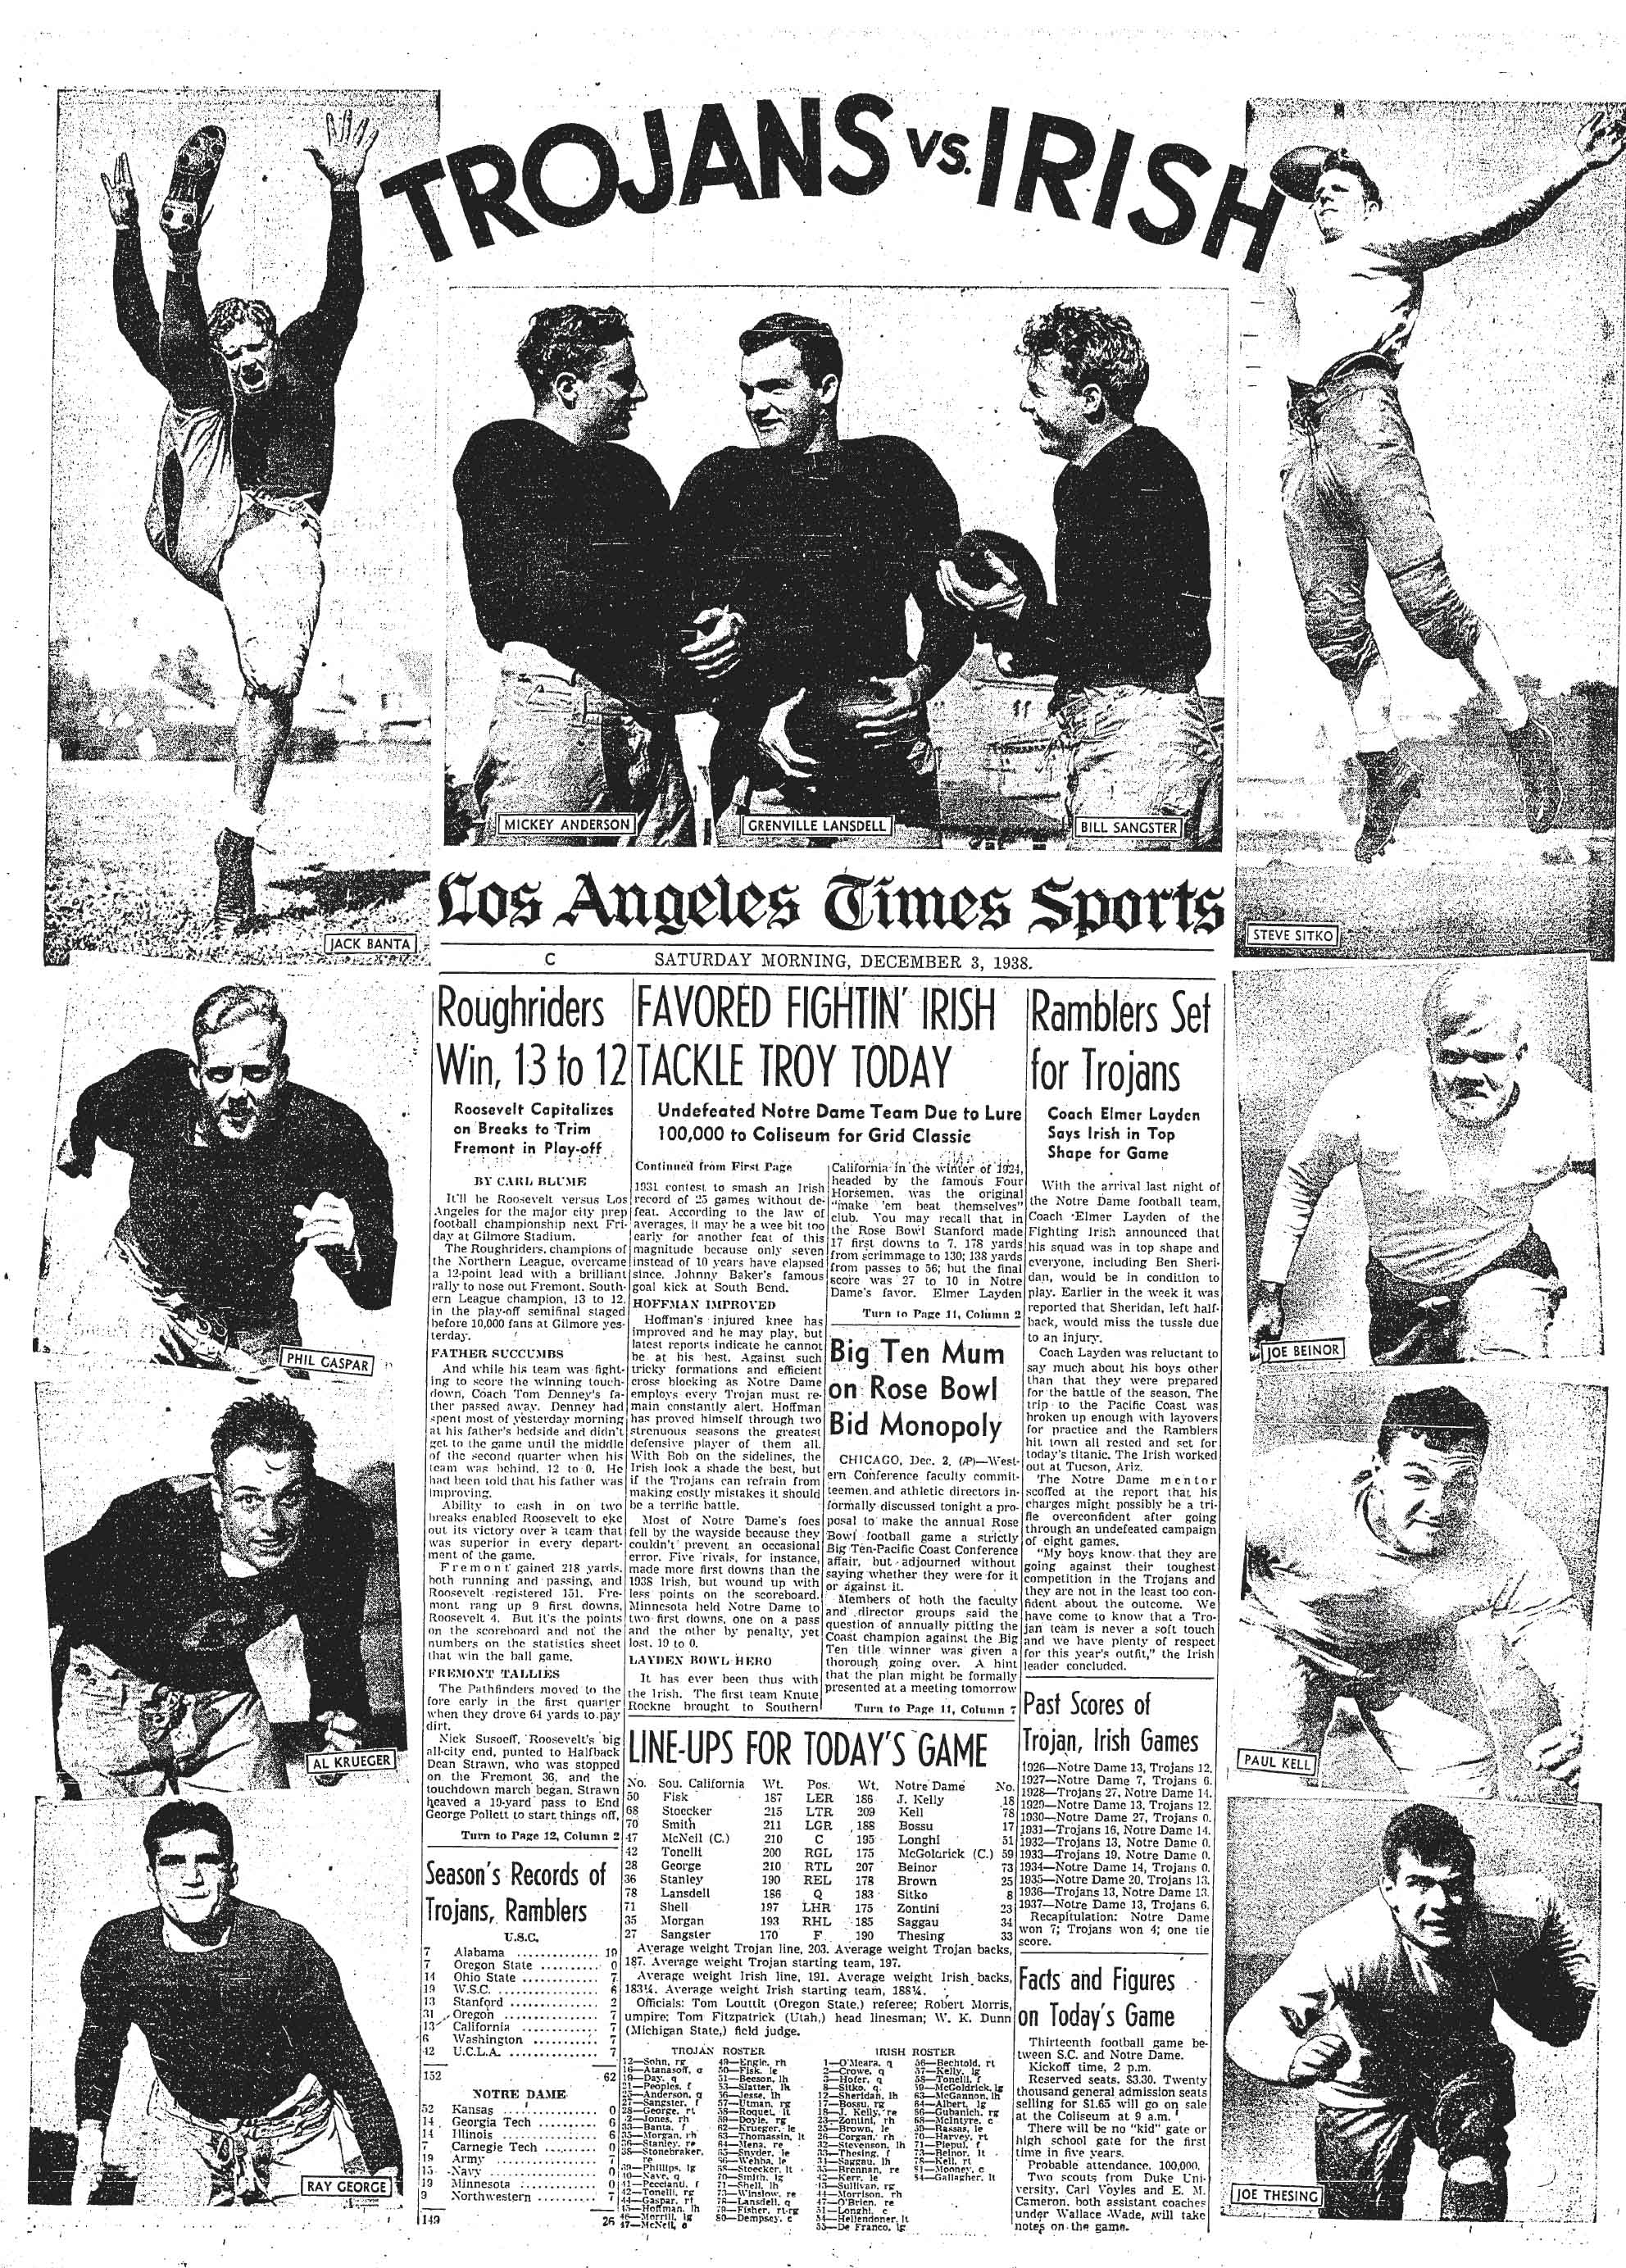 Los Angeles Times reports